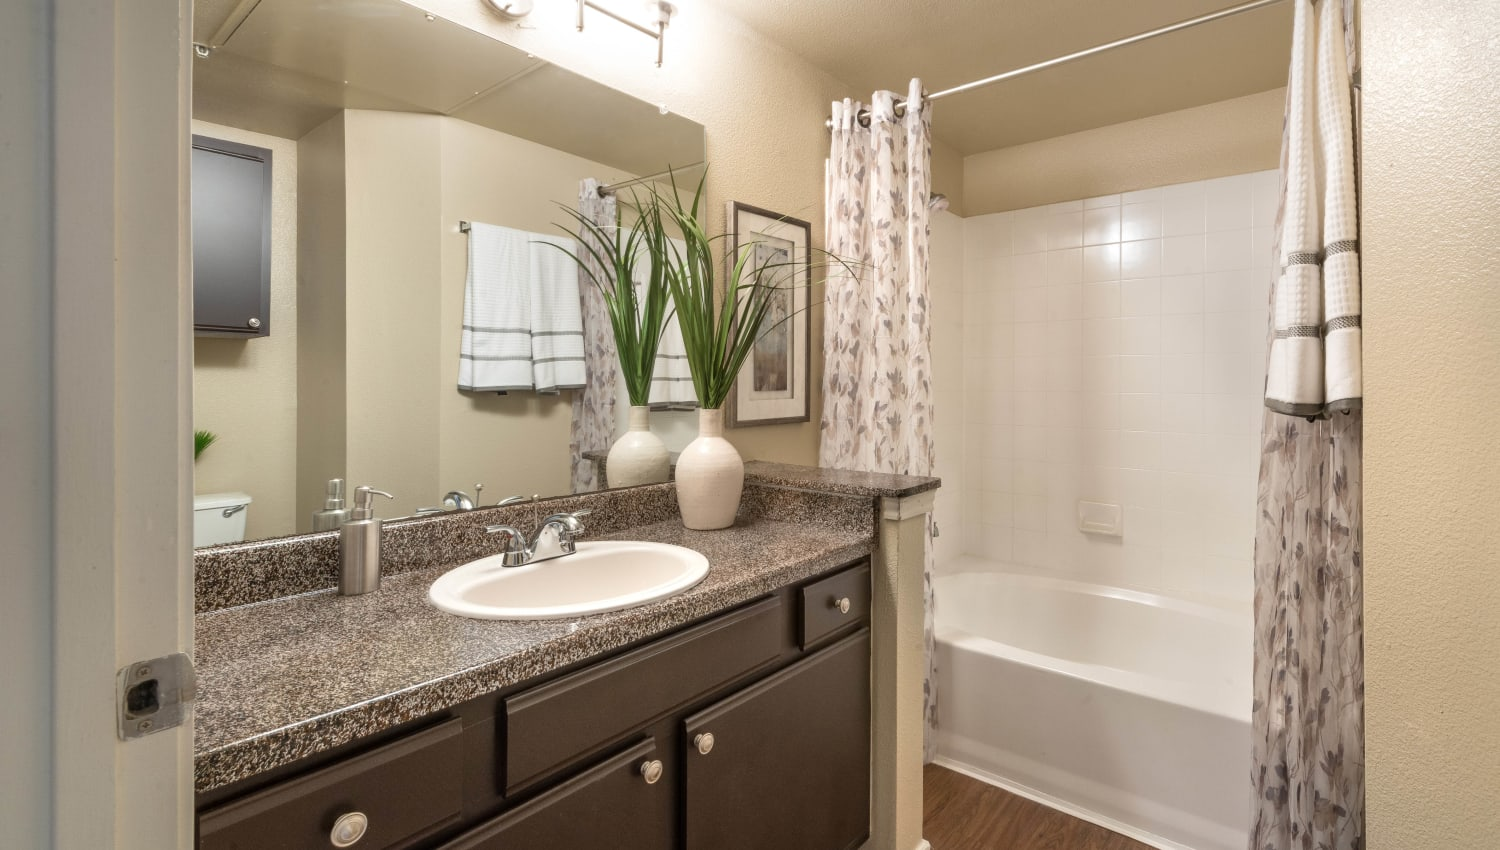 Tiled shower and a granite countertop in a model apartment's bathroom at The Ranch at Shadow Lake in Houston, Texas